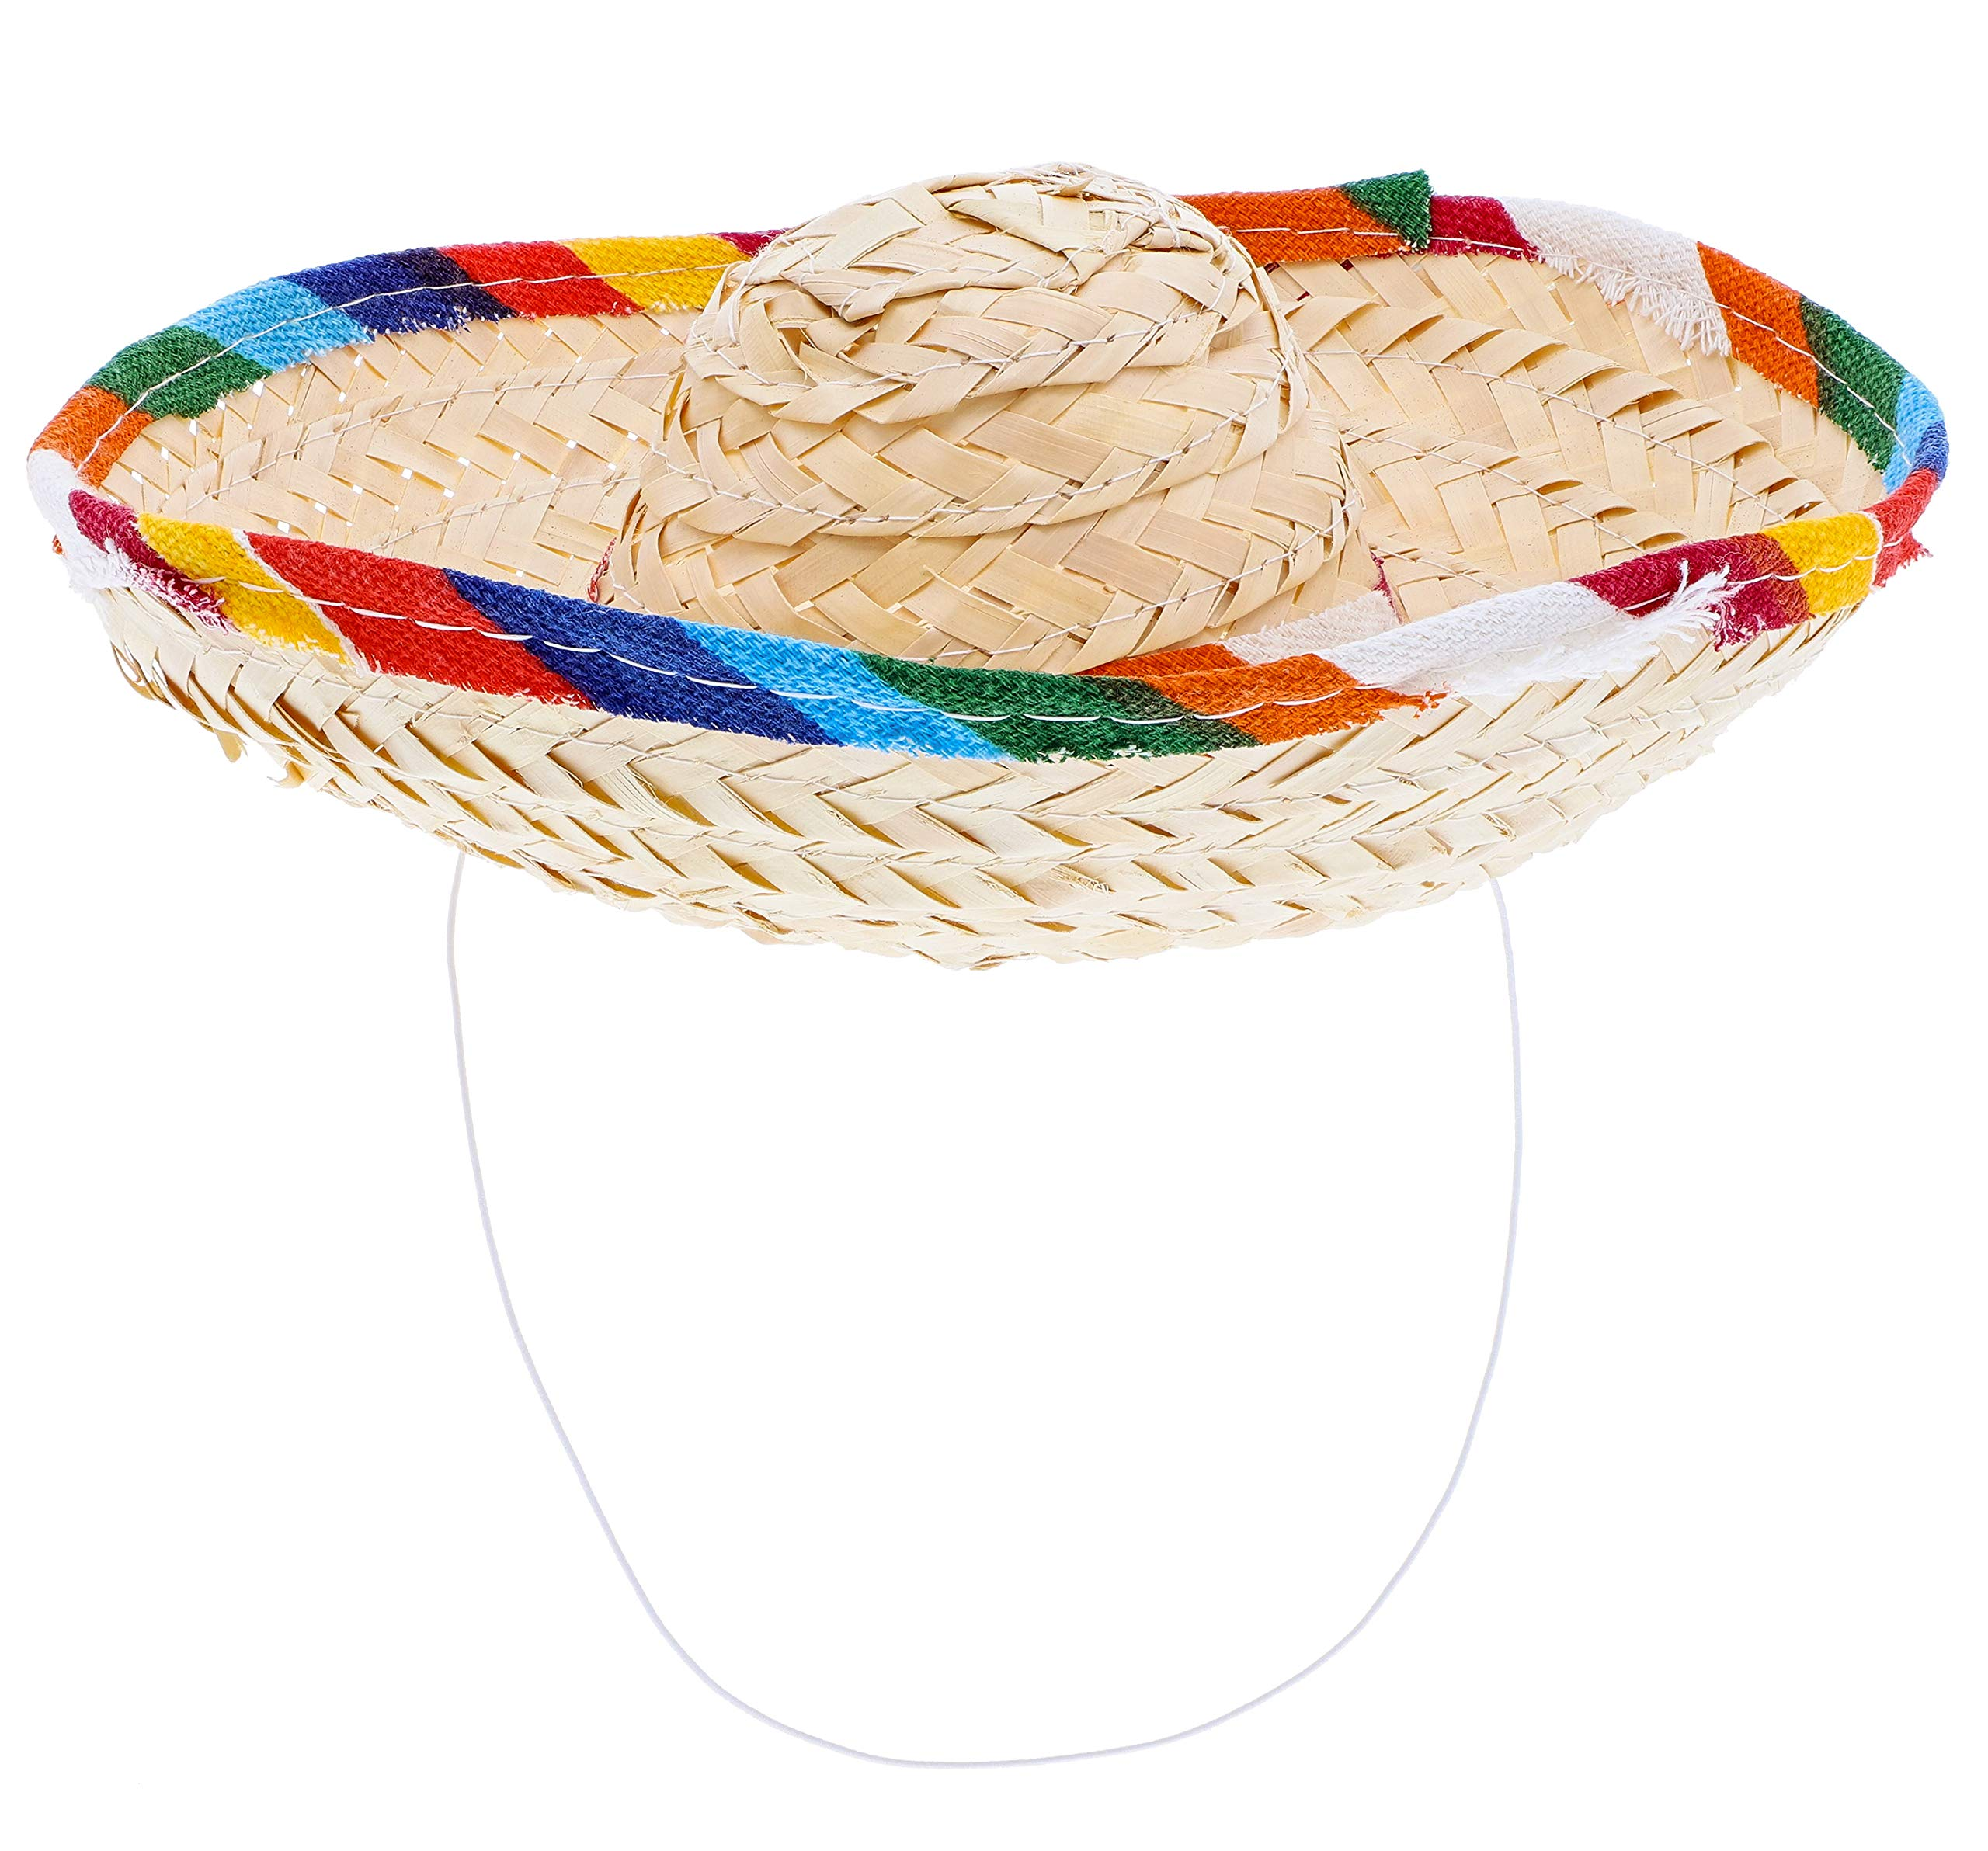 Juvale 12 Pack Mini Mexican Straw Sombrero Fiesta Party Hats for Cinco de Mayo Party Supplies, 3 x 8 Inches